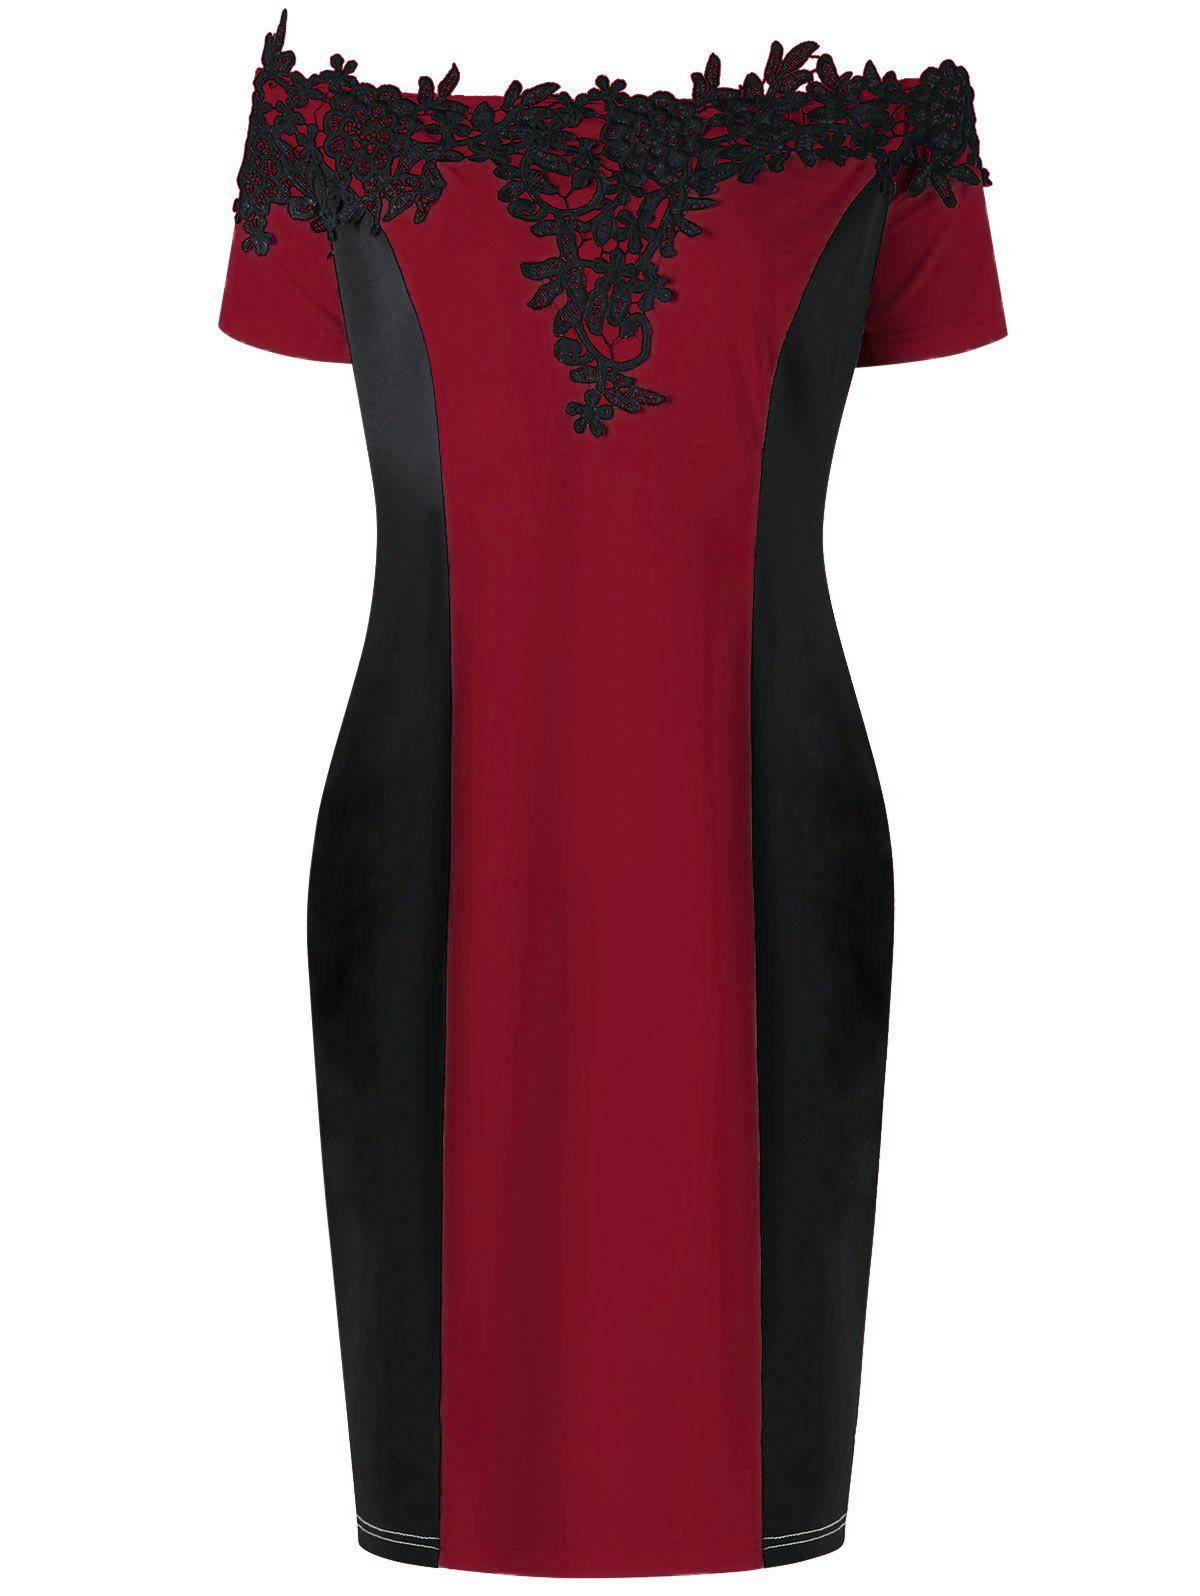 Appliqued Off The Shoulder Plus Size Pencil DressWOMEN<br><br>Size: 3XL; Color: DEEP RED; Style: Brief; Material: Polyester,Spandex; Silhouette: Sheath; Dresses Length: Mini; Neckline: Off The Shoulder; Sleeve Length: Short Sleeves; Embellishment: Appliques; Pattern Type: Floral; With Belt: No; Season: Summer; Weight: 0.3200kg; Package Contents: 1 x Dress;